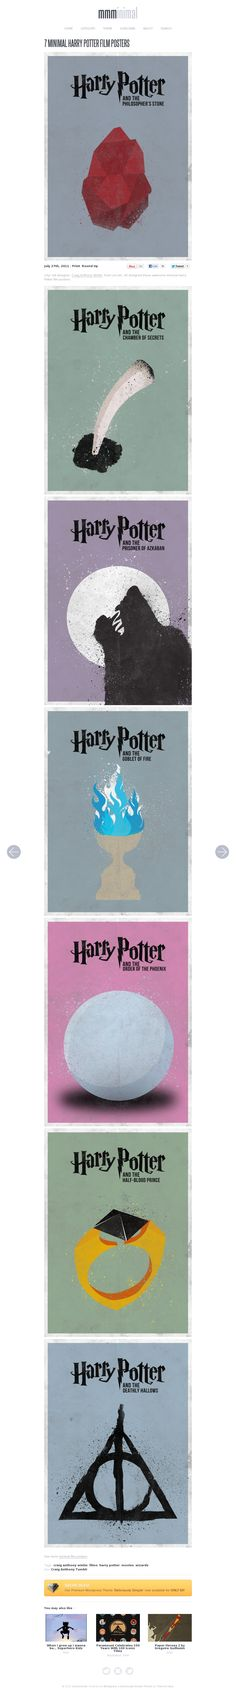 minimal harry potter posters